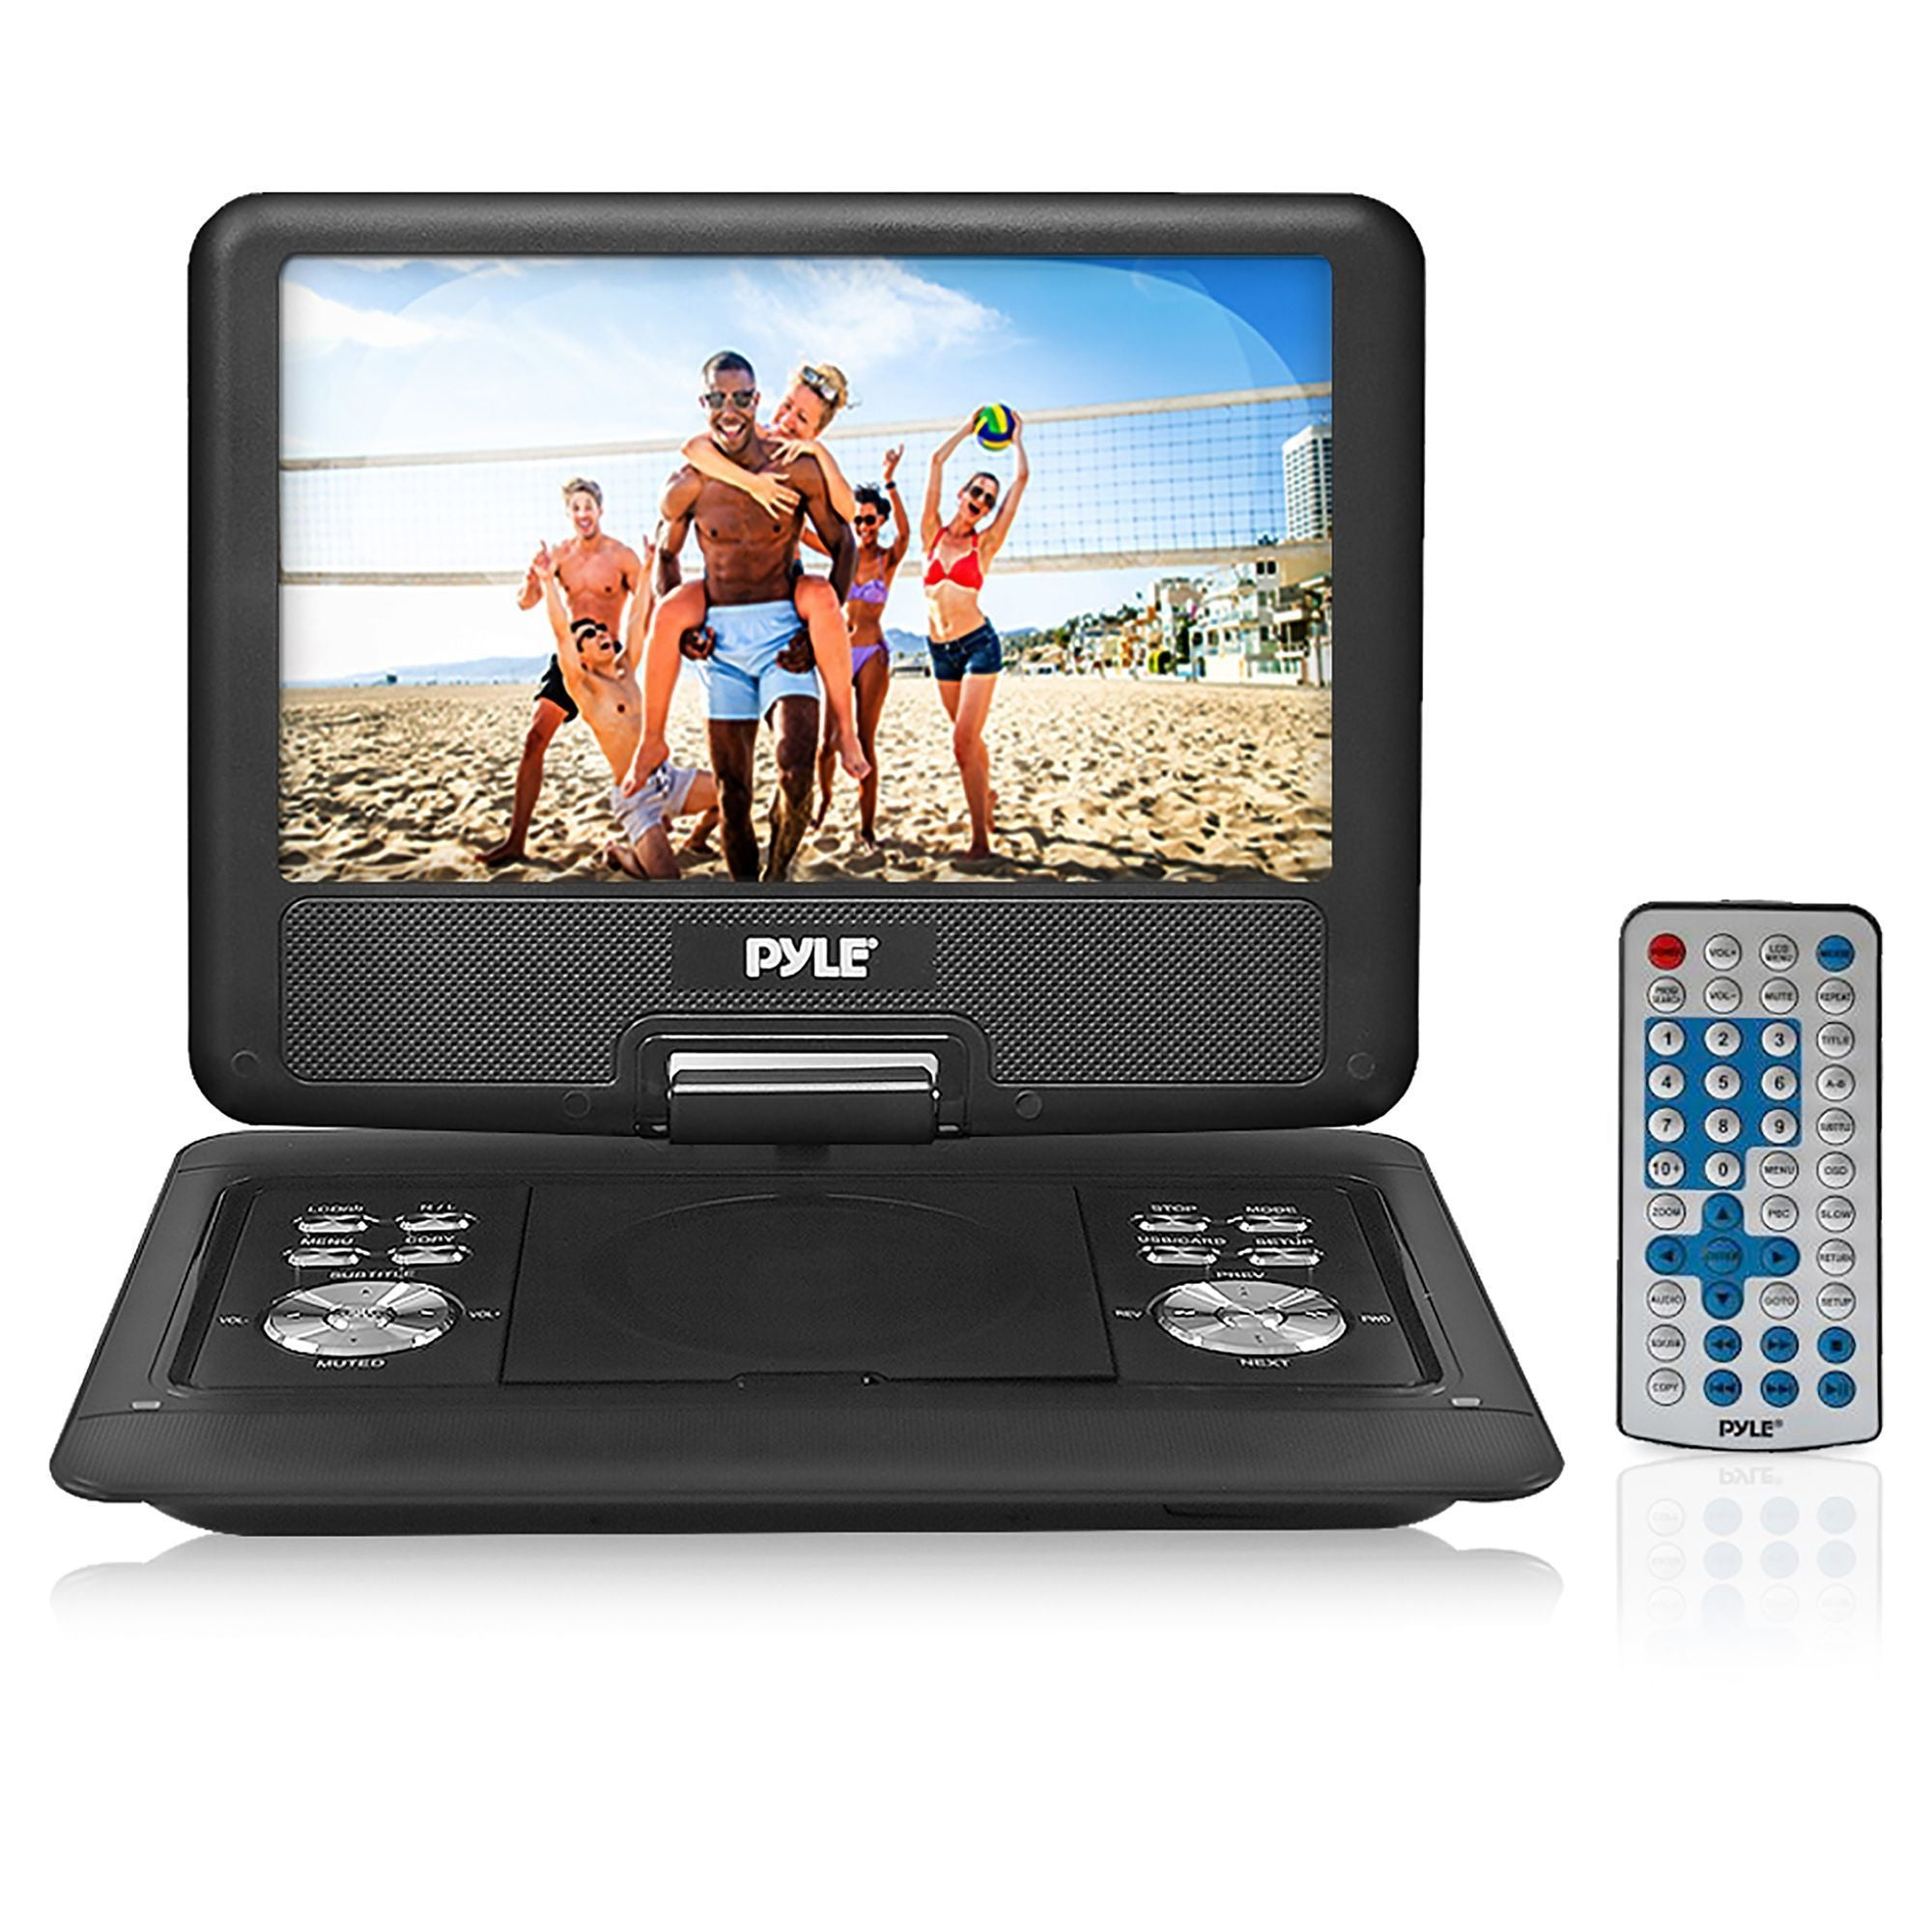 PyleHome 14'' Portable CD/DVD Player, Hi-Re Widescreen Display with Rechargeable Battery (PDH14)